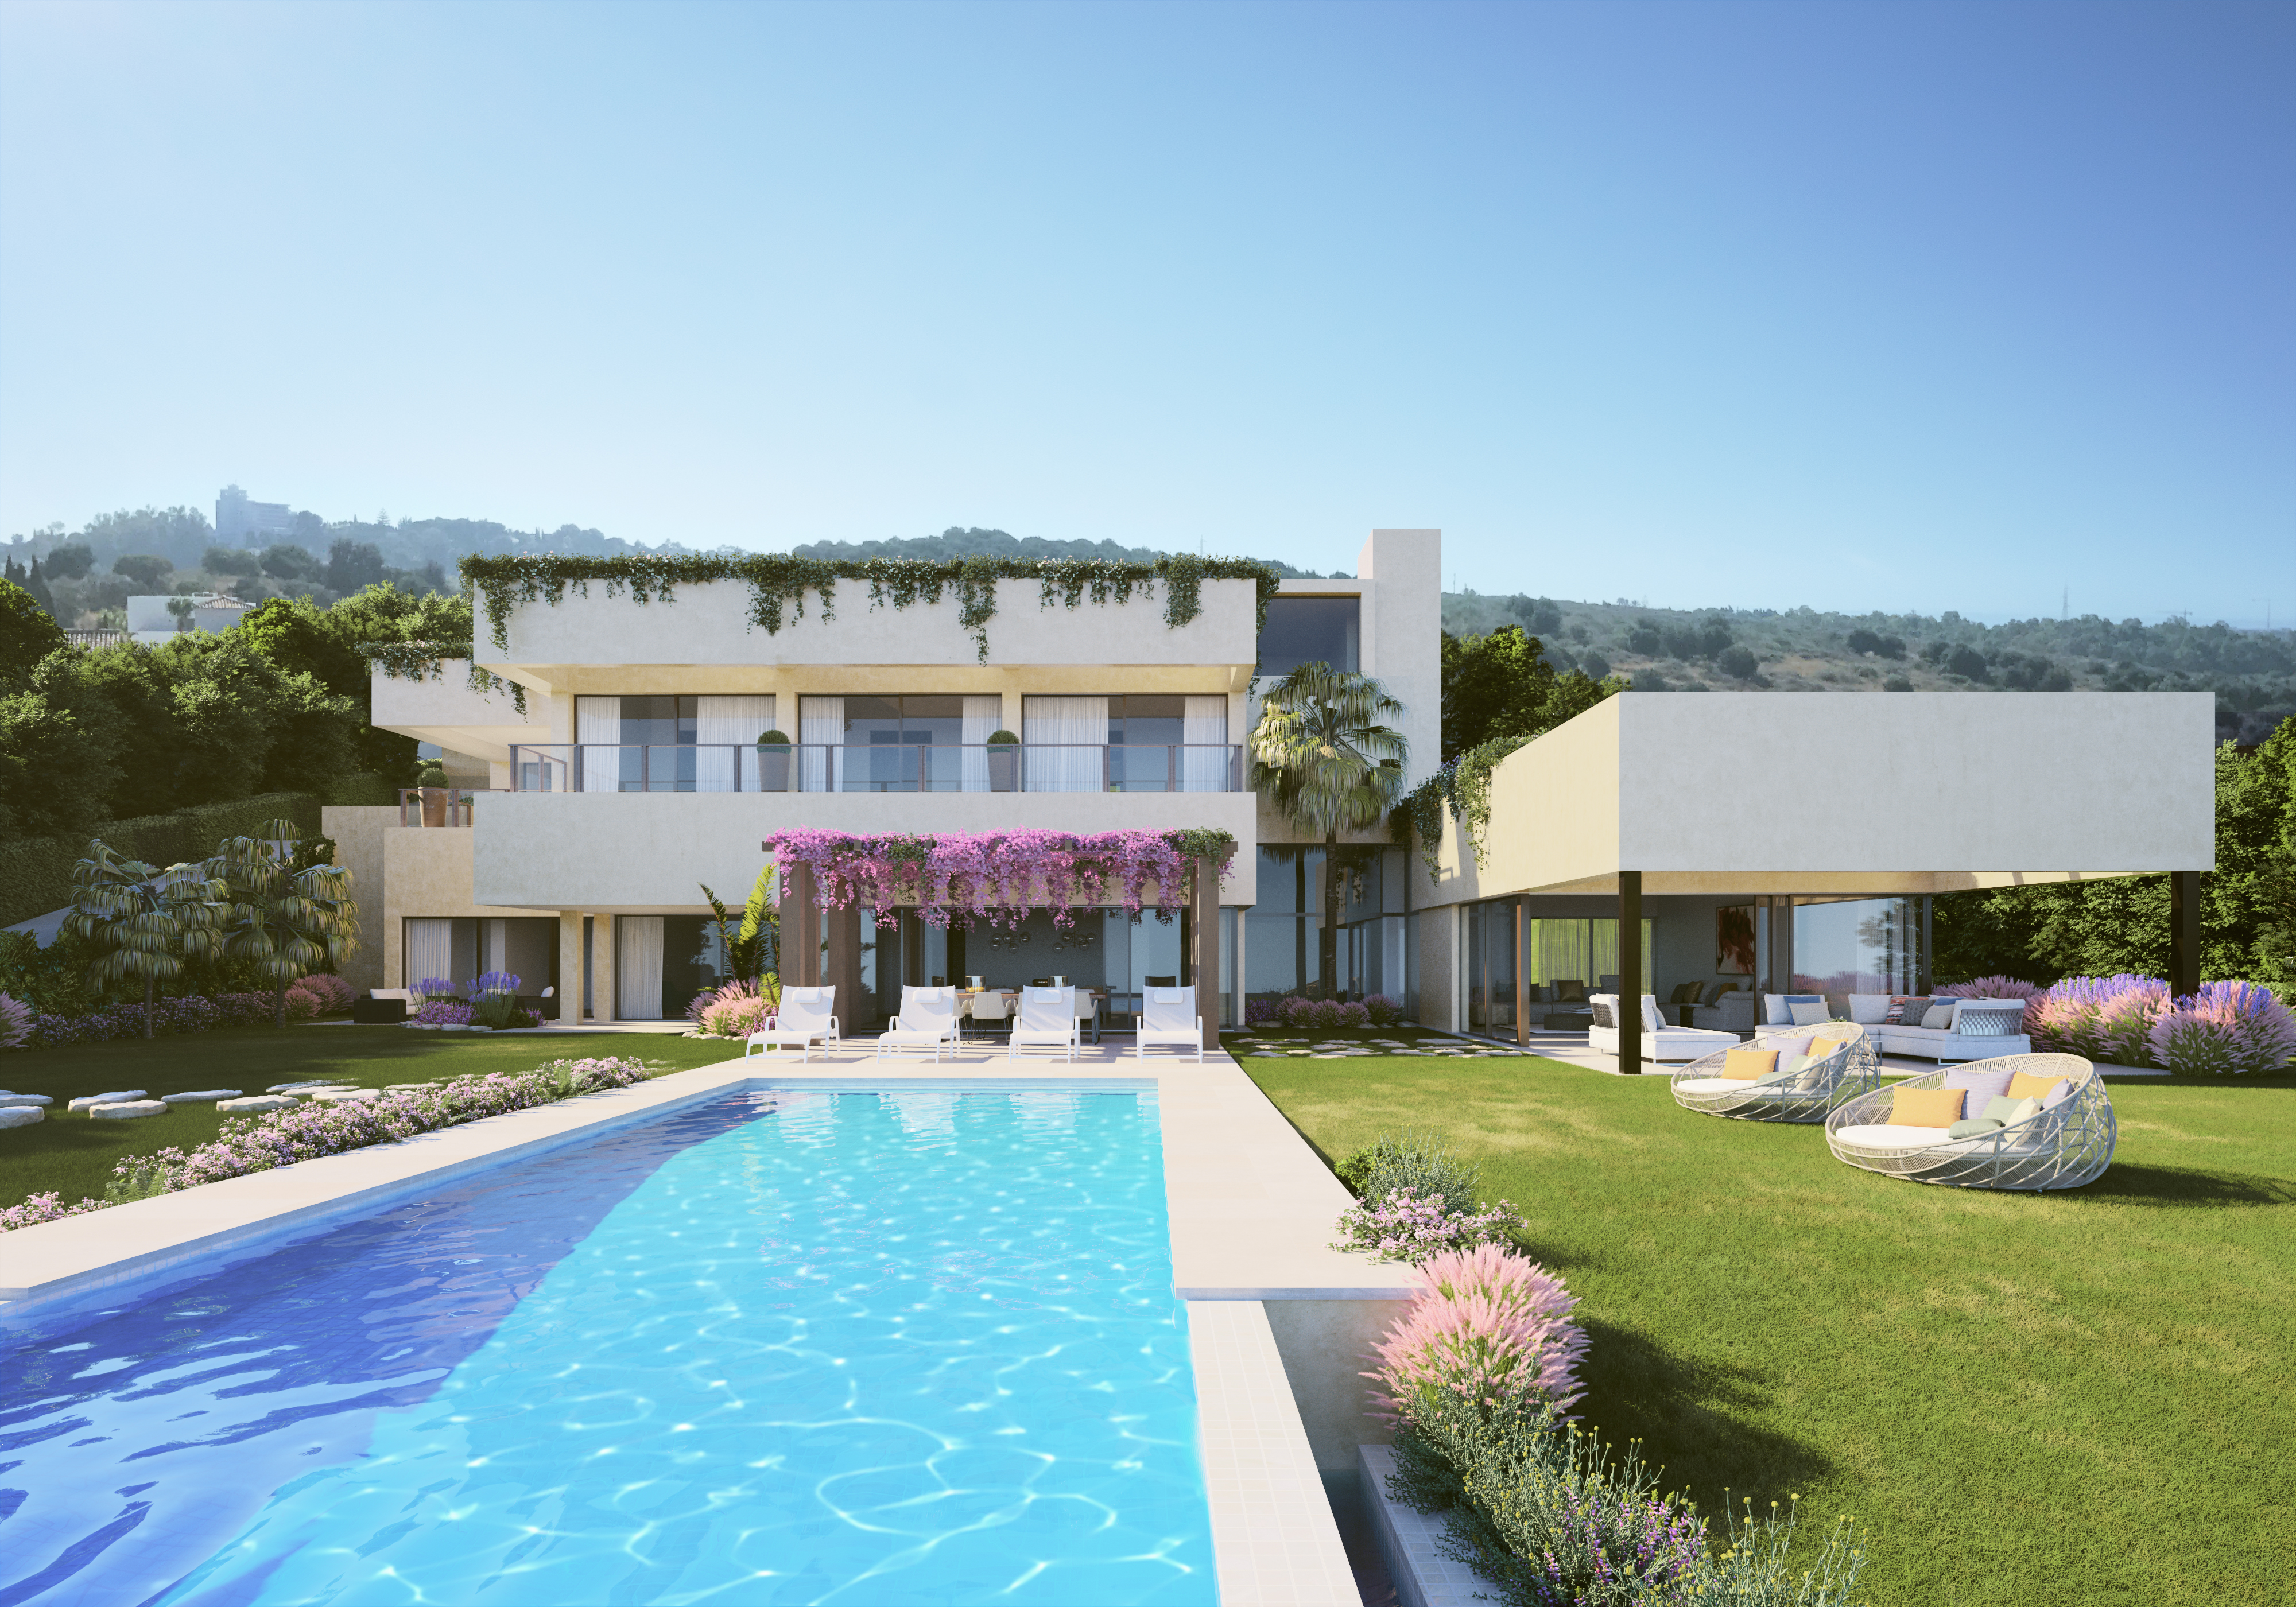 LUX0303: Villa in Benahavis